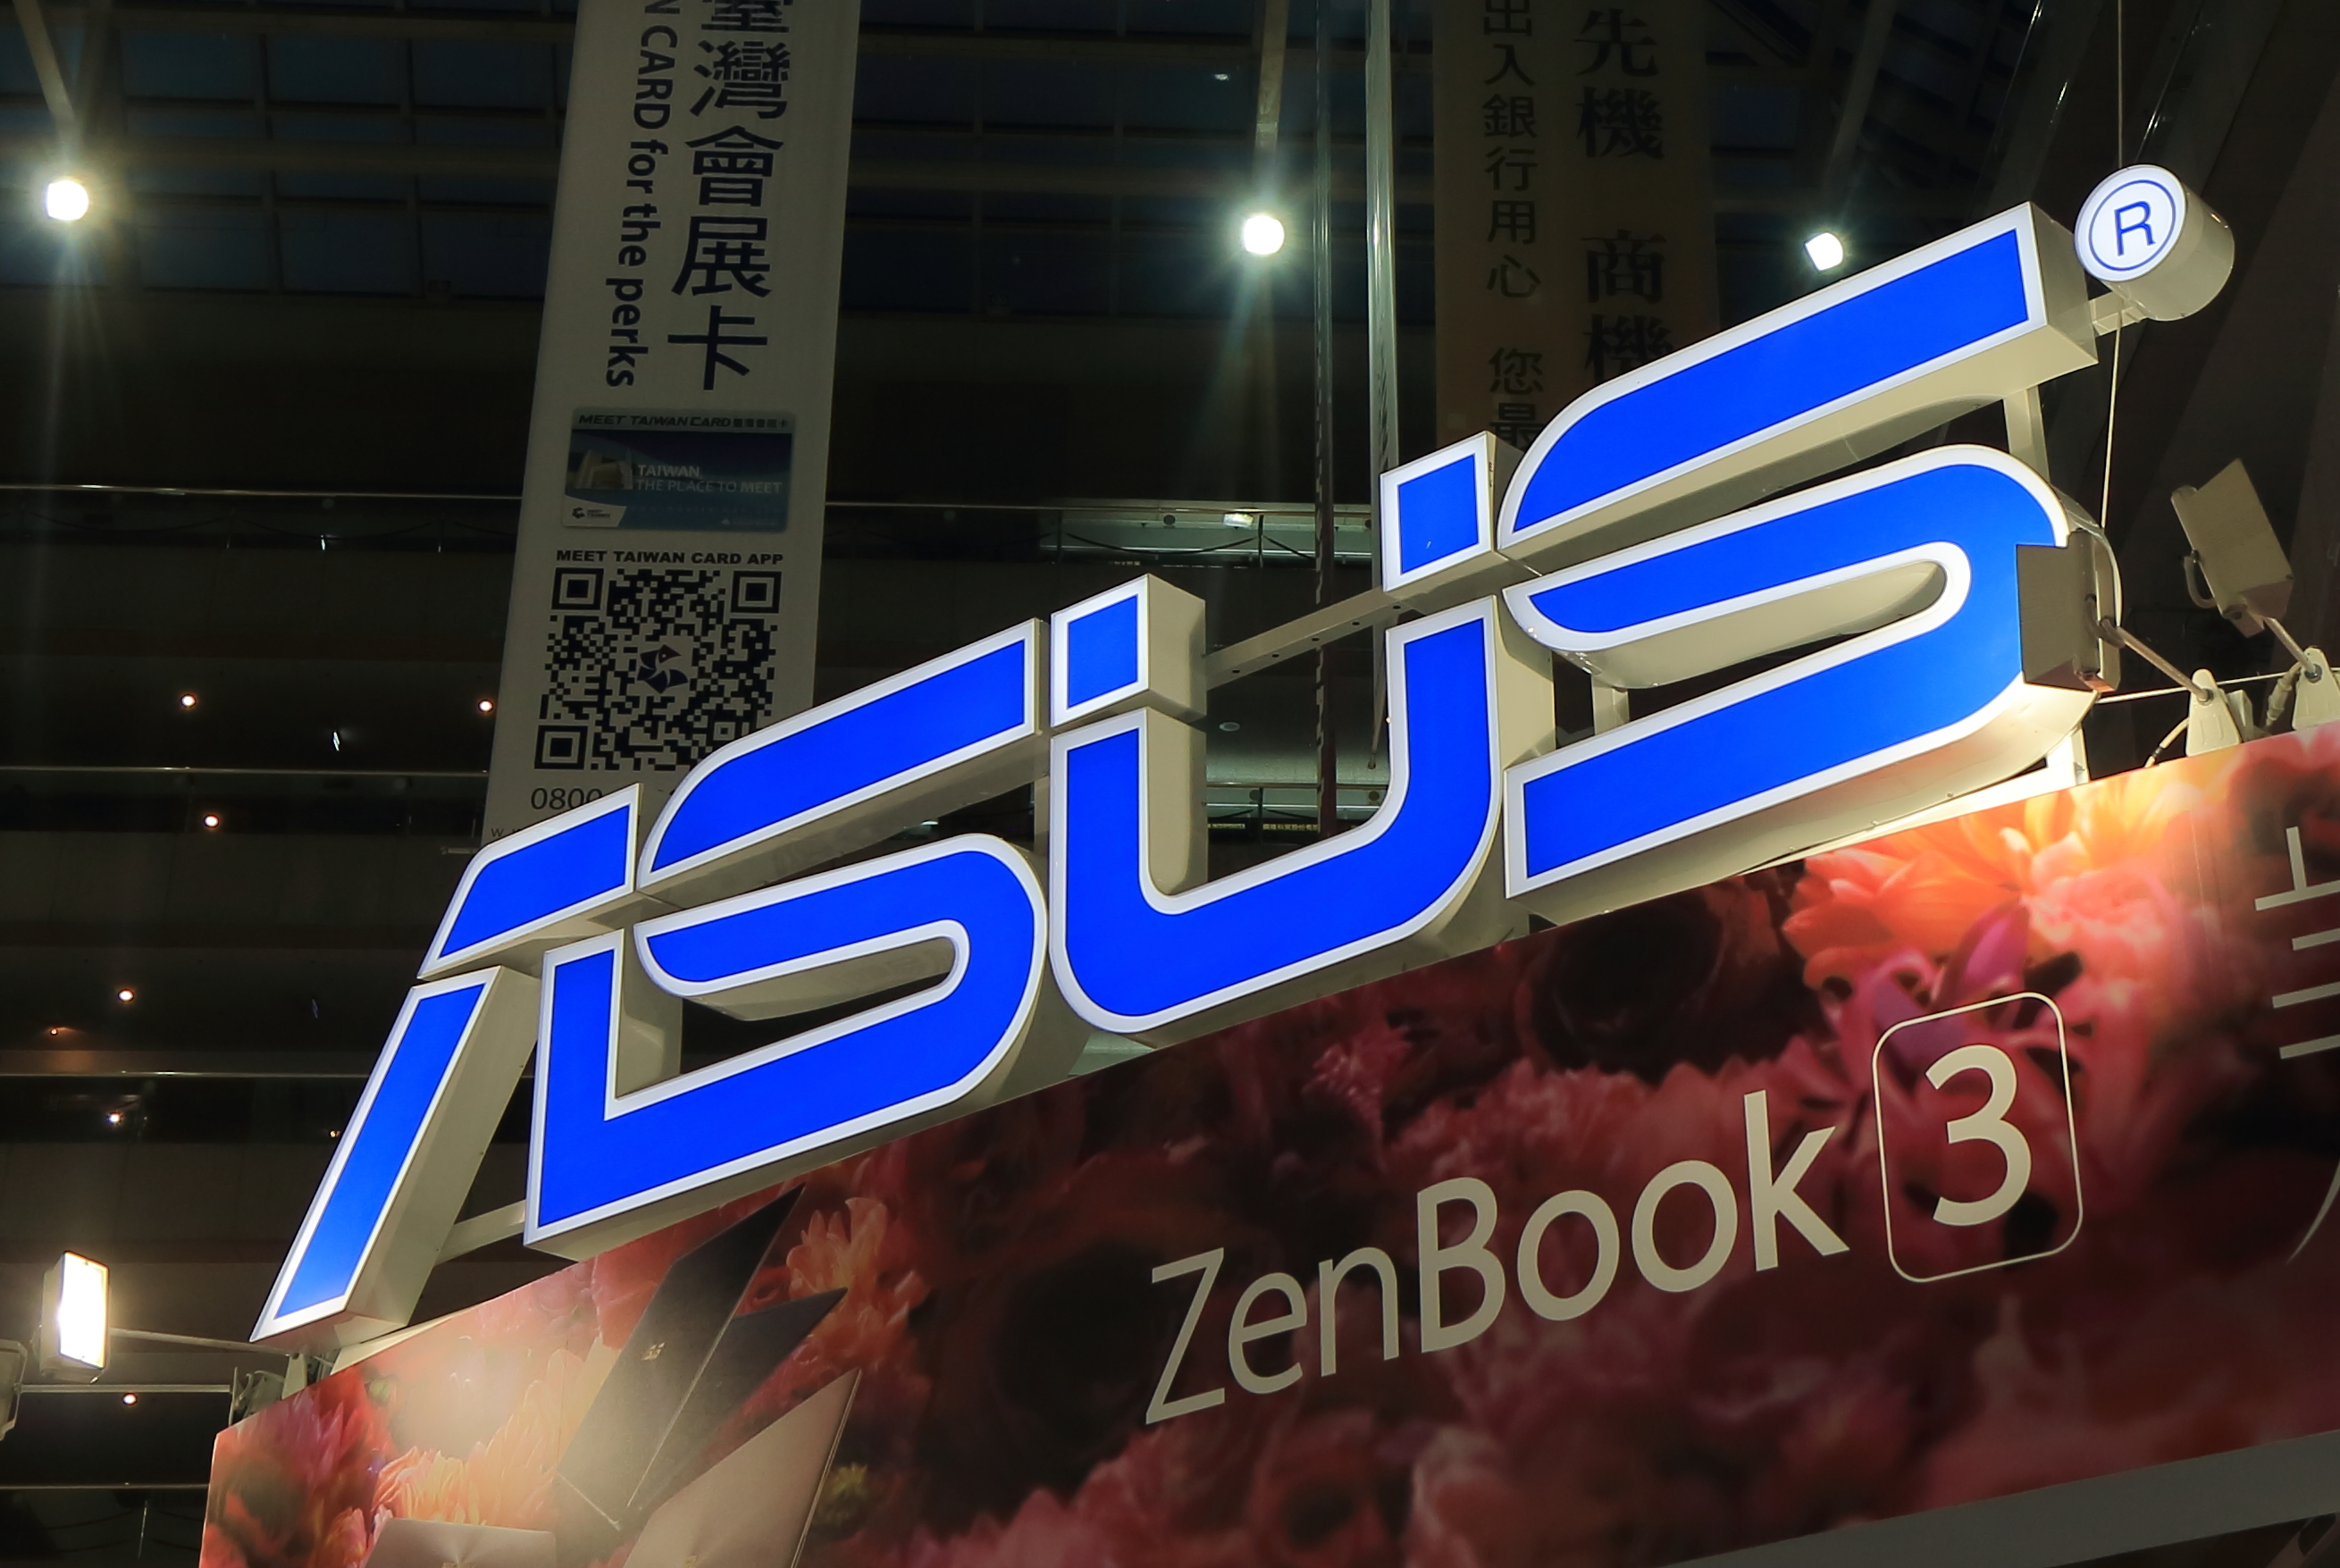 Asus Announces New Graphics Cards Focused on Cryptocurrency Mining